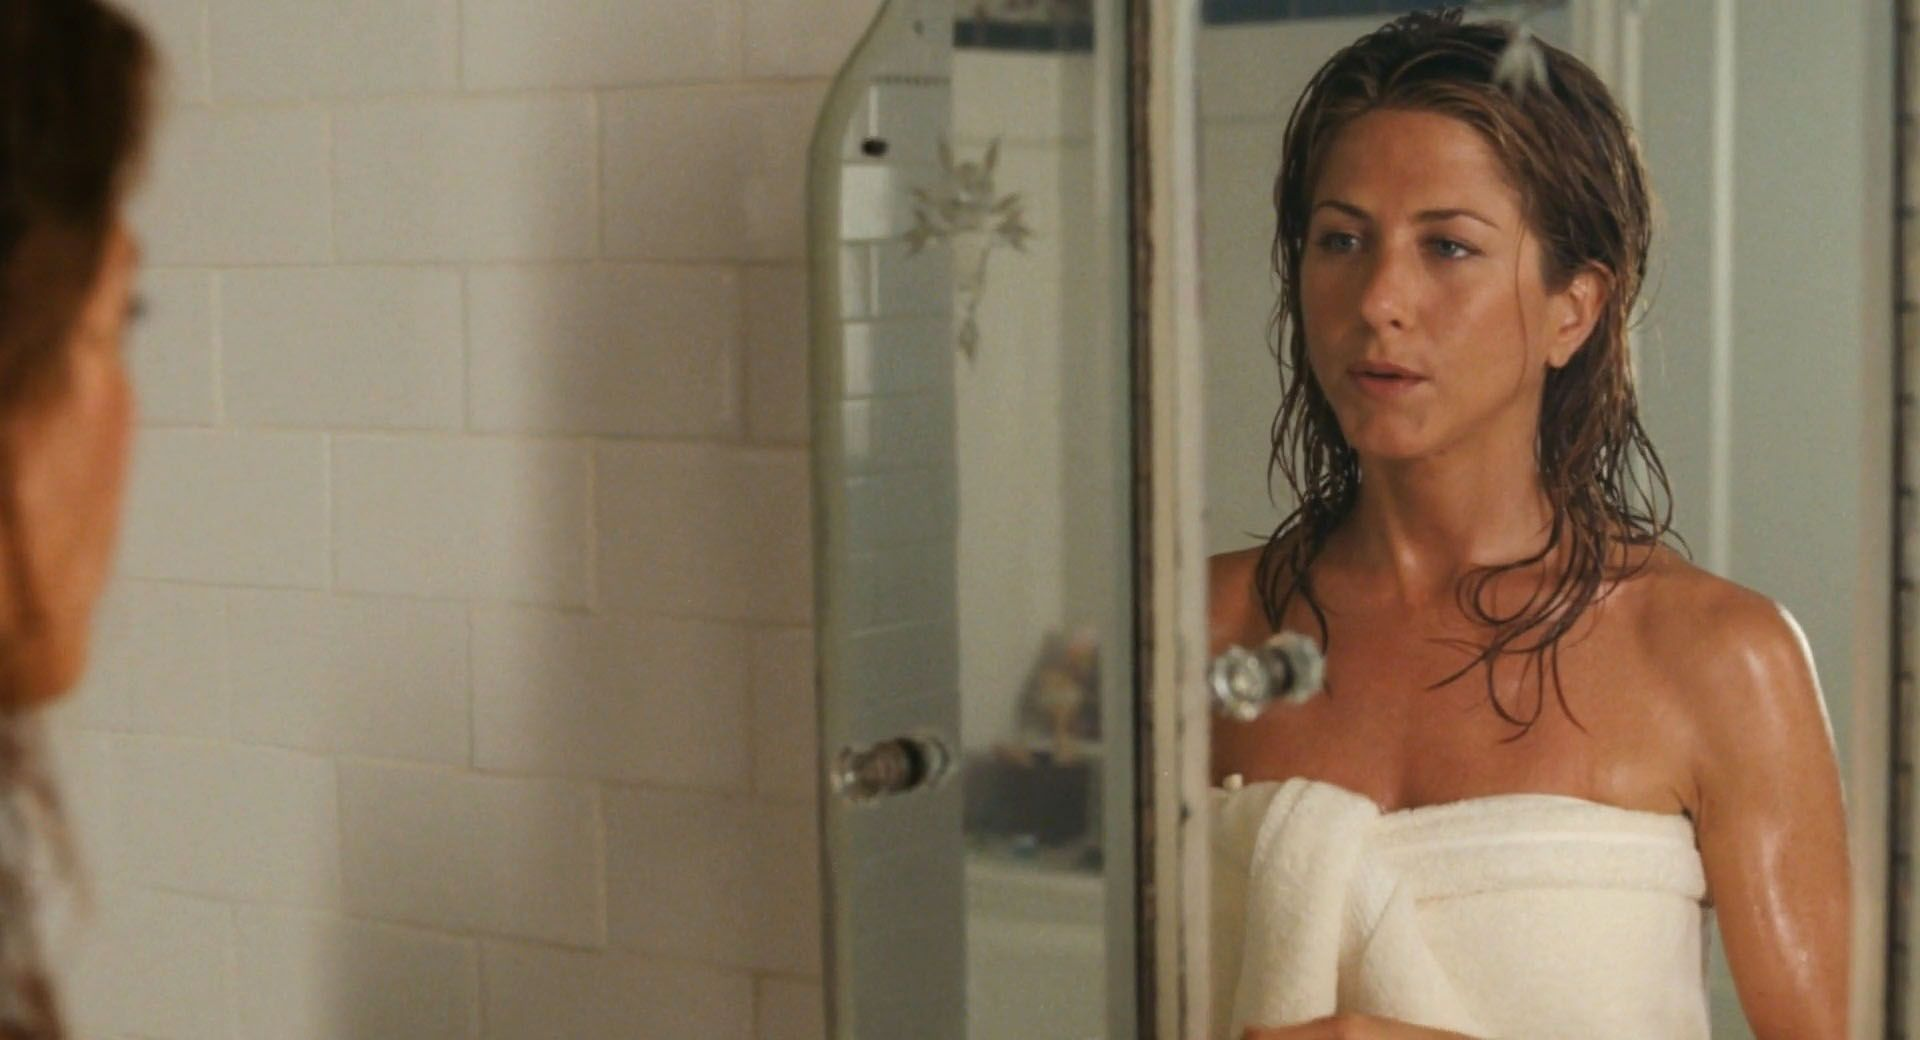 The Jennifer aniston naked in the breakup VIDOUS